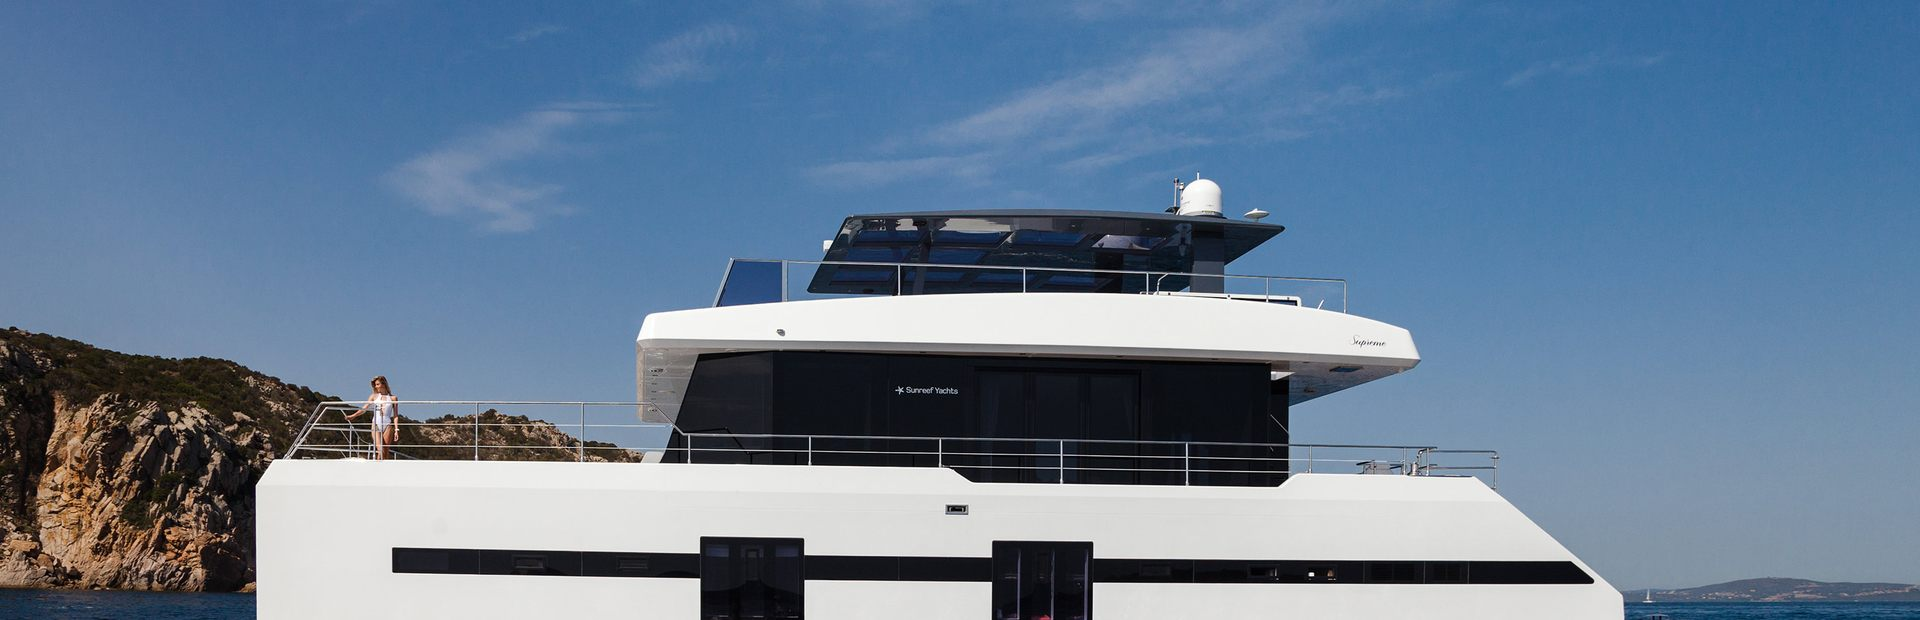 Supreme 68 Power Yacht Charter